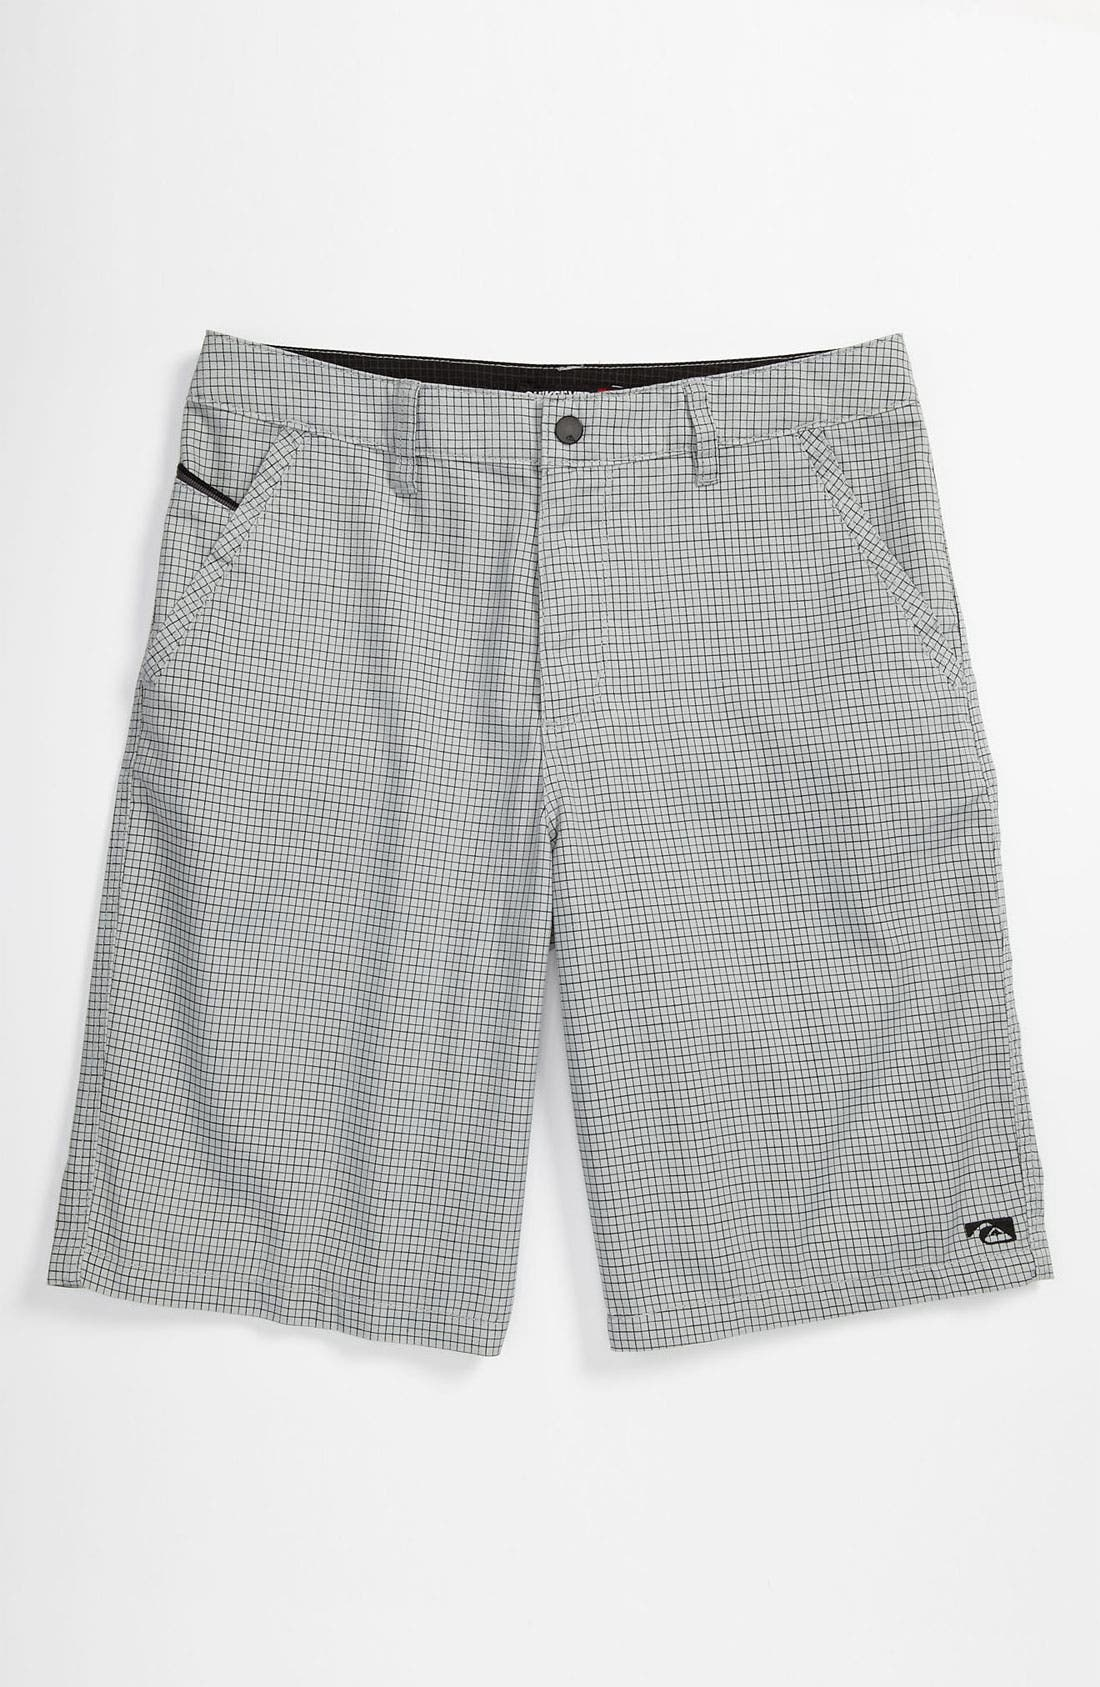 Alternate Image 1 Selected - Quiksilver 'All In' Shorts (Big Boys)